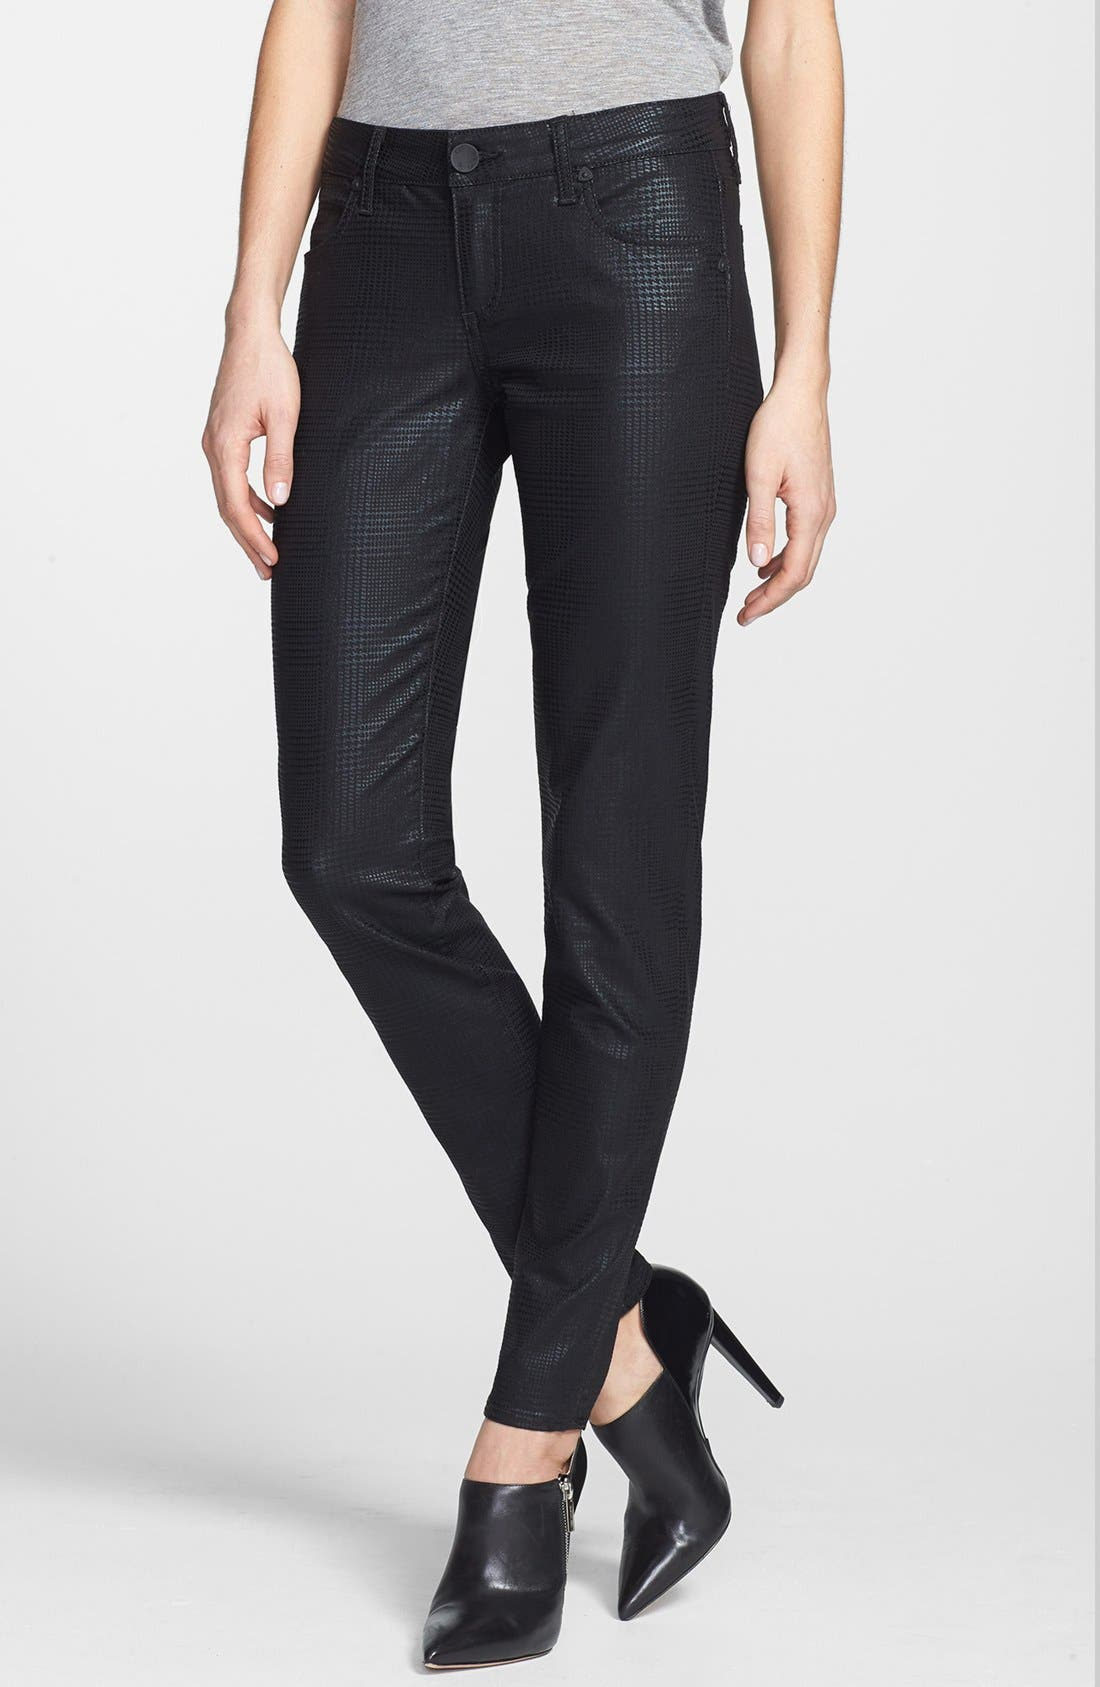 Alternate Image 1 Selected - KUT from the Kloth 'Mia' Toothpick Skinny Jeans (Black)